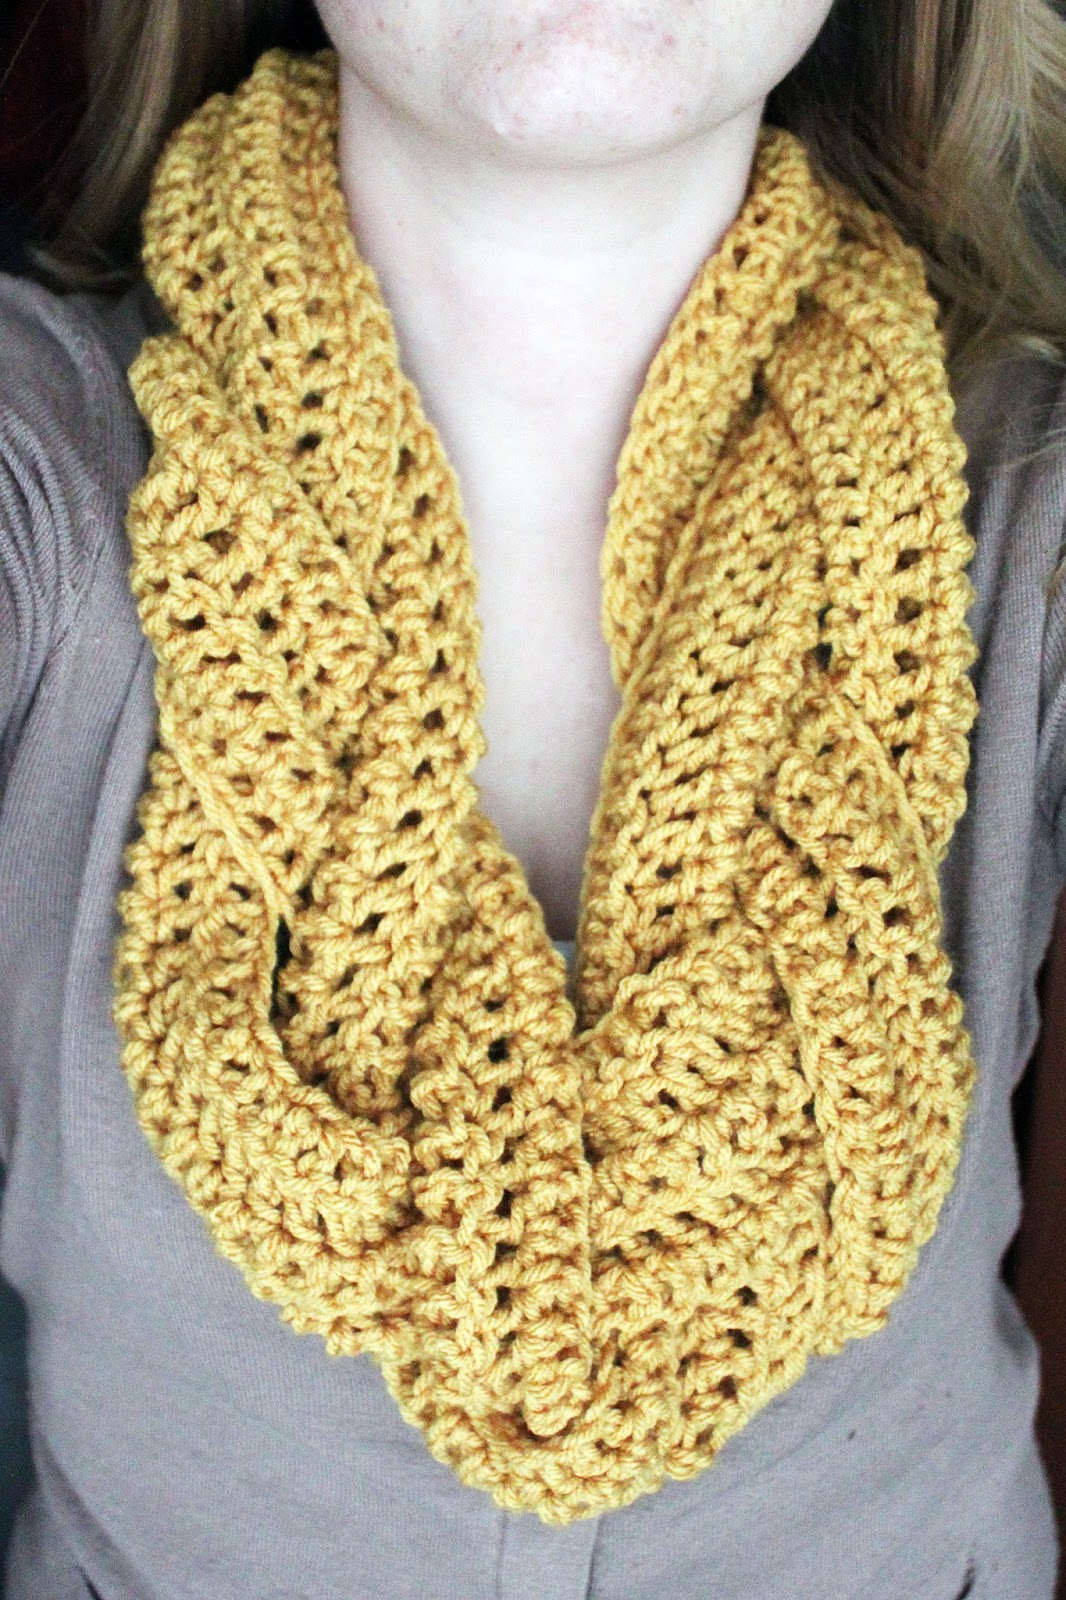 How To Crochet A Scarf Double crochet back onto the